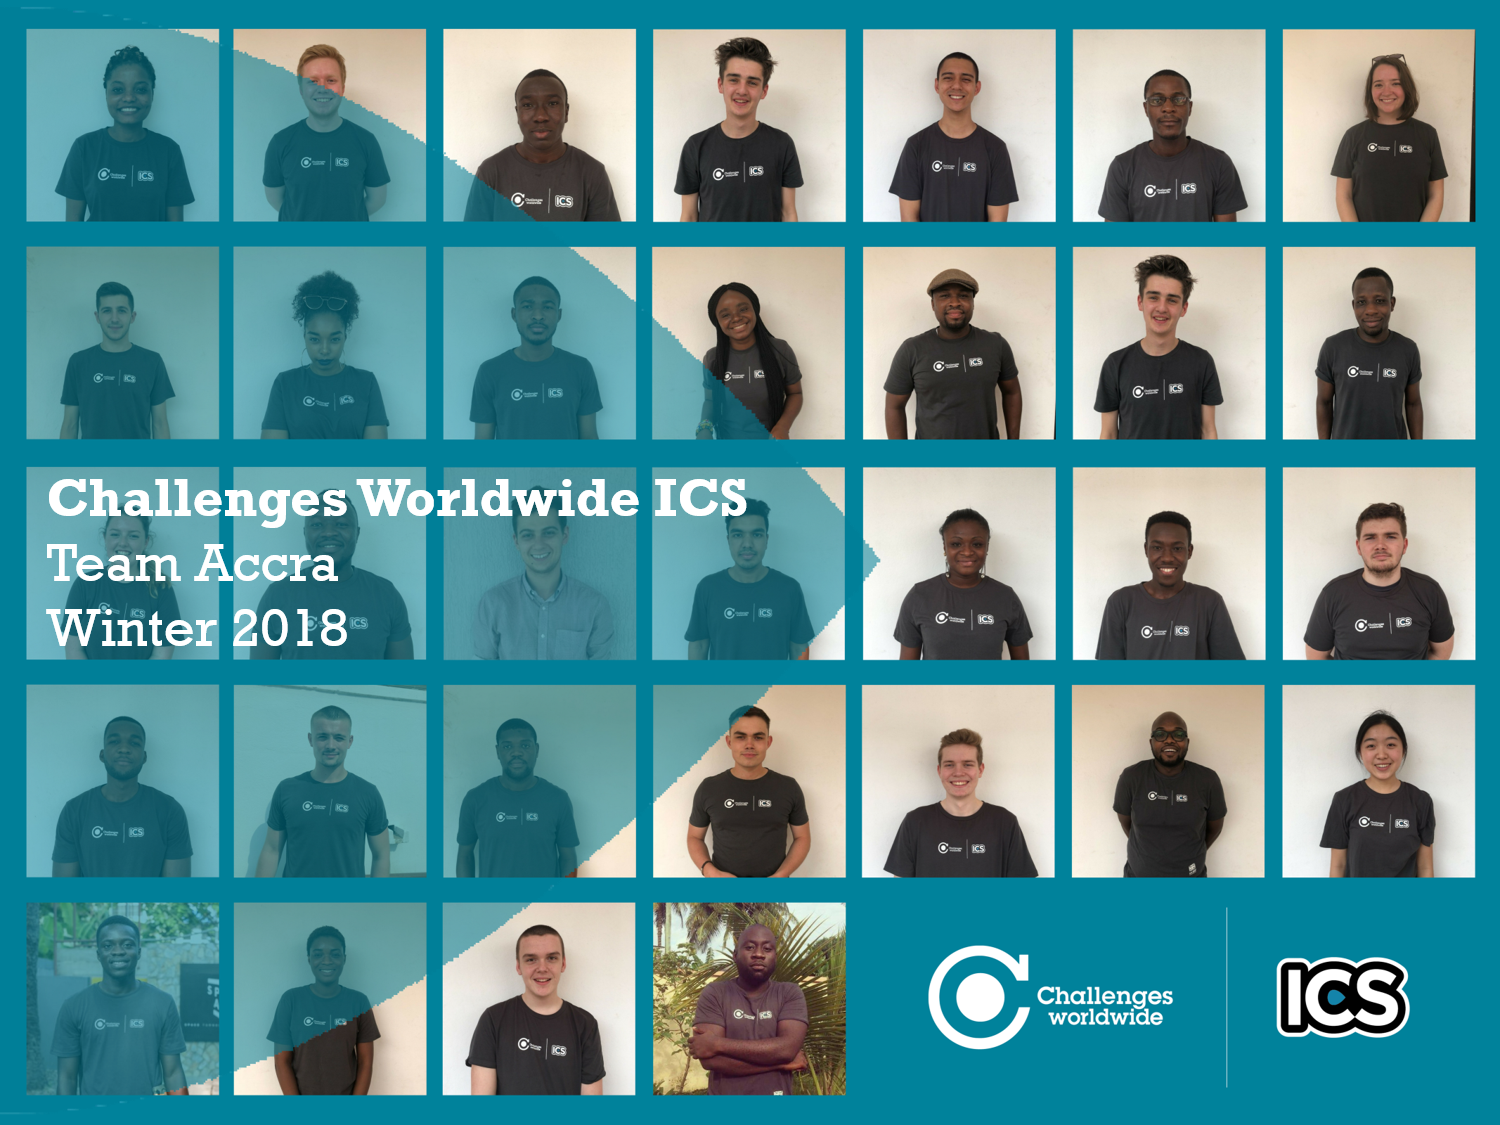 Meet the Team: Accra, Winter 2018